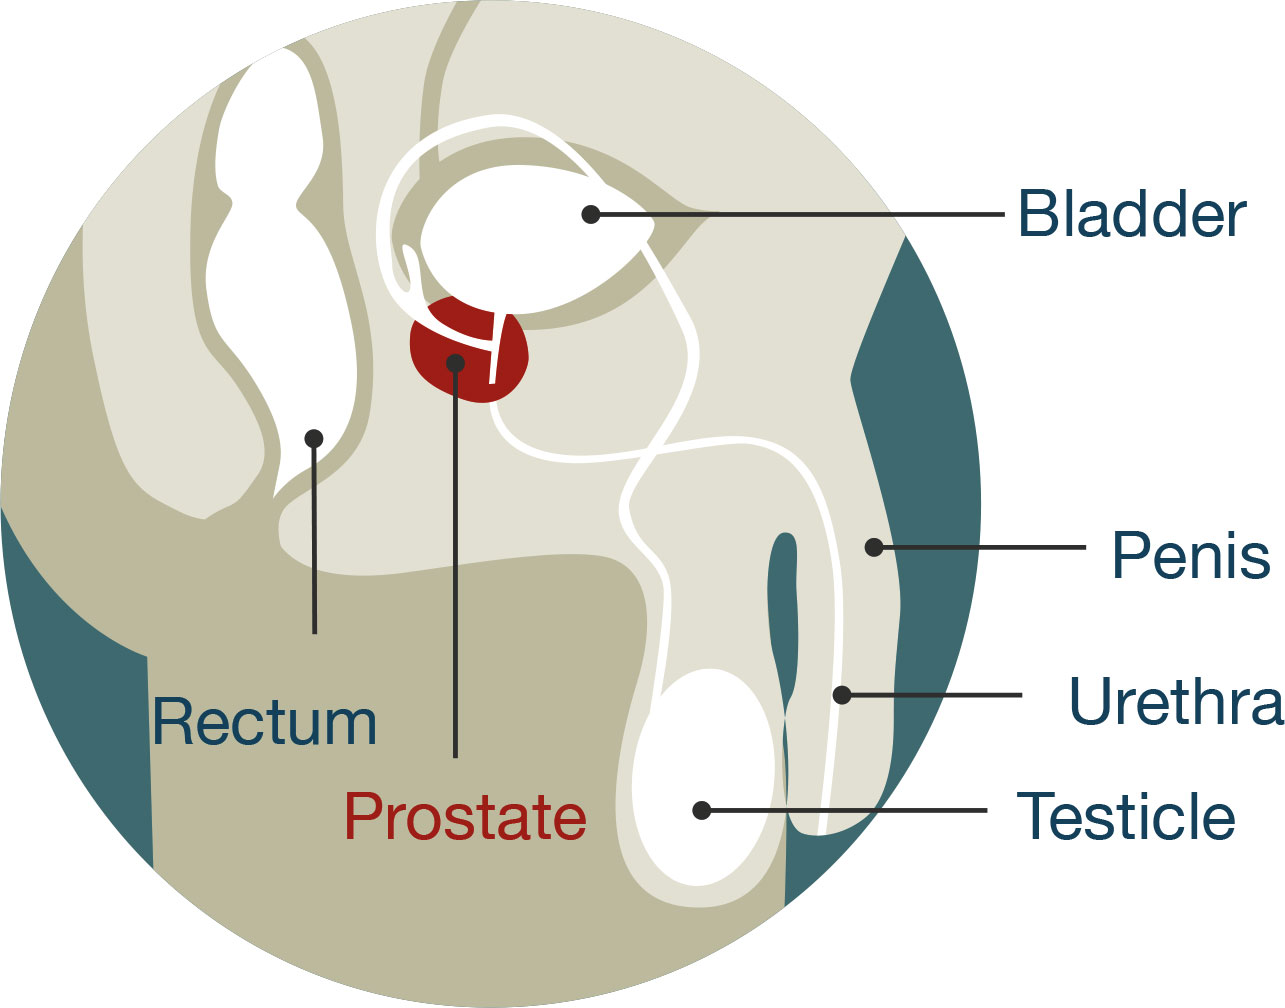 hight resolution of diagram of male anatomy the prostate is located just below the bladder